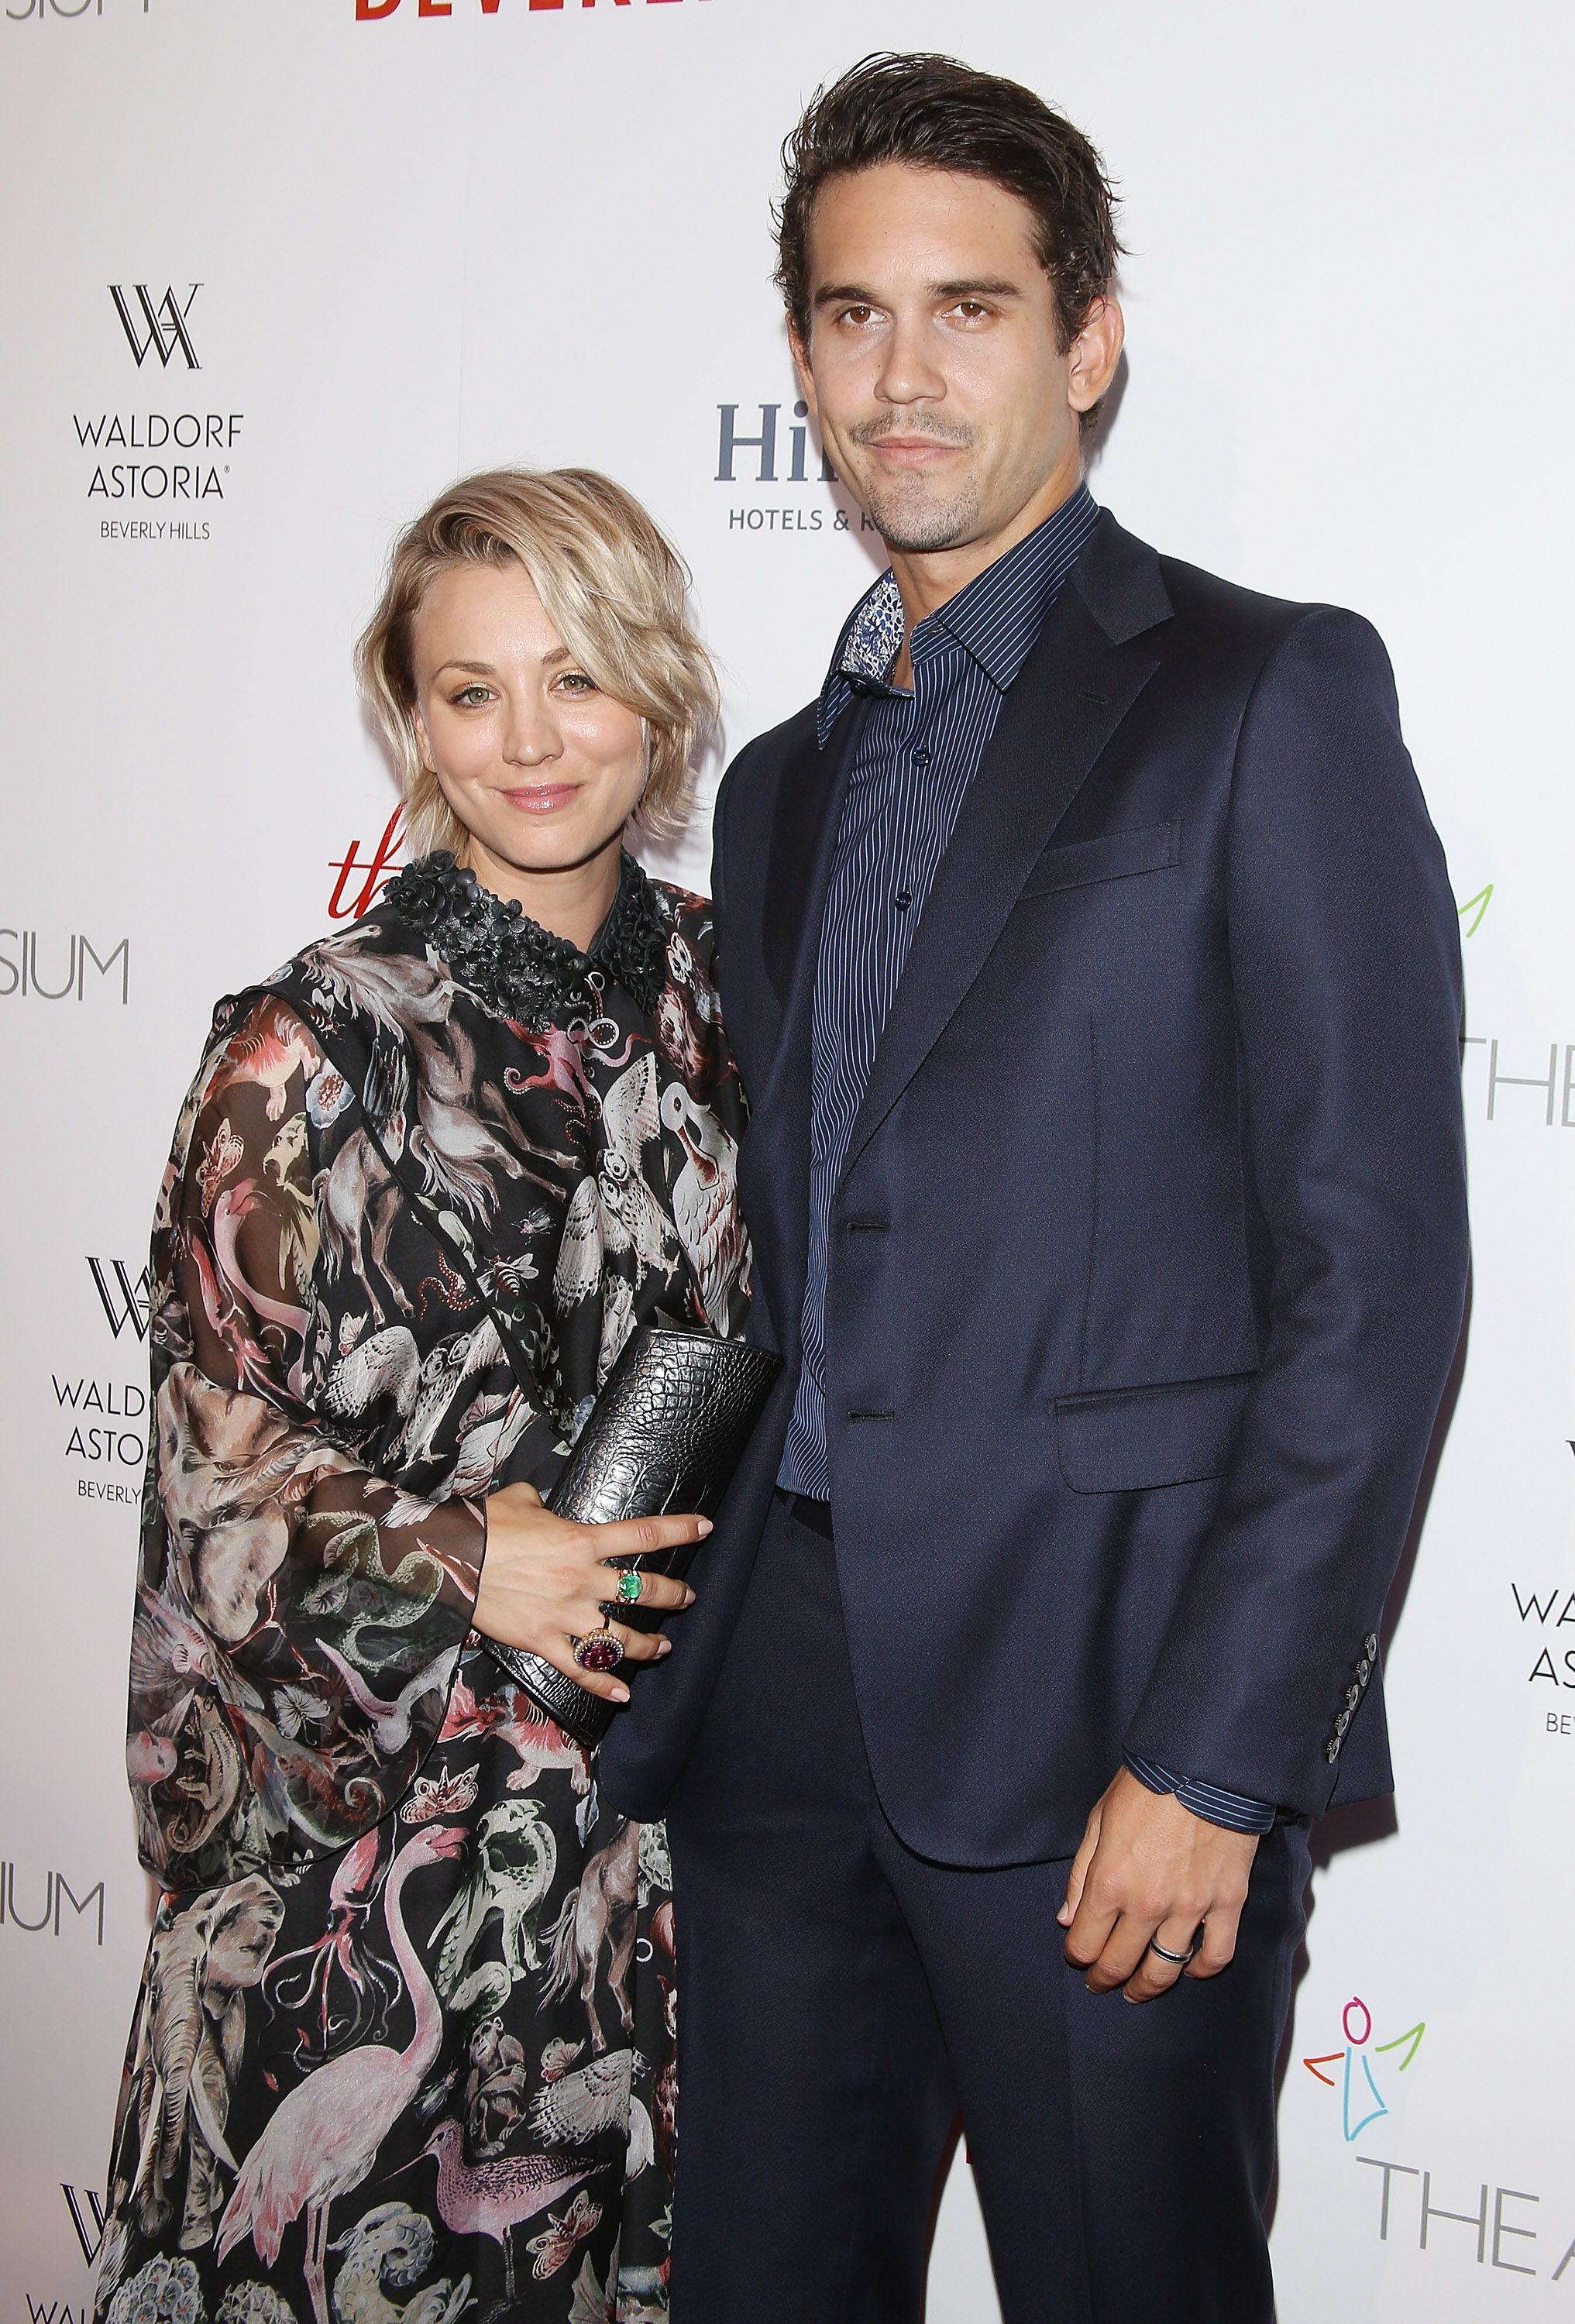 Kaley Cuoco-Sweeting and Ryan Sweeting arrive at The Beverly Hilton celebrates 60 Years with a Diamond Anniversary Party held on Aug. 21, 2015 in Beverly Hills, Calif.